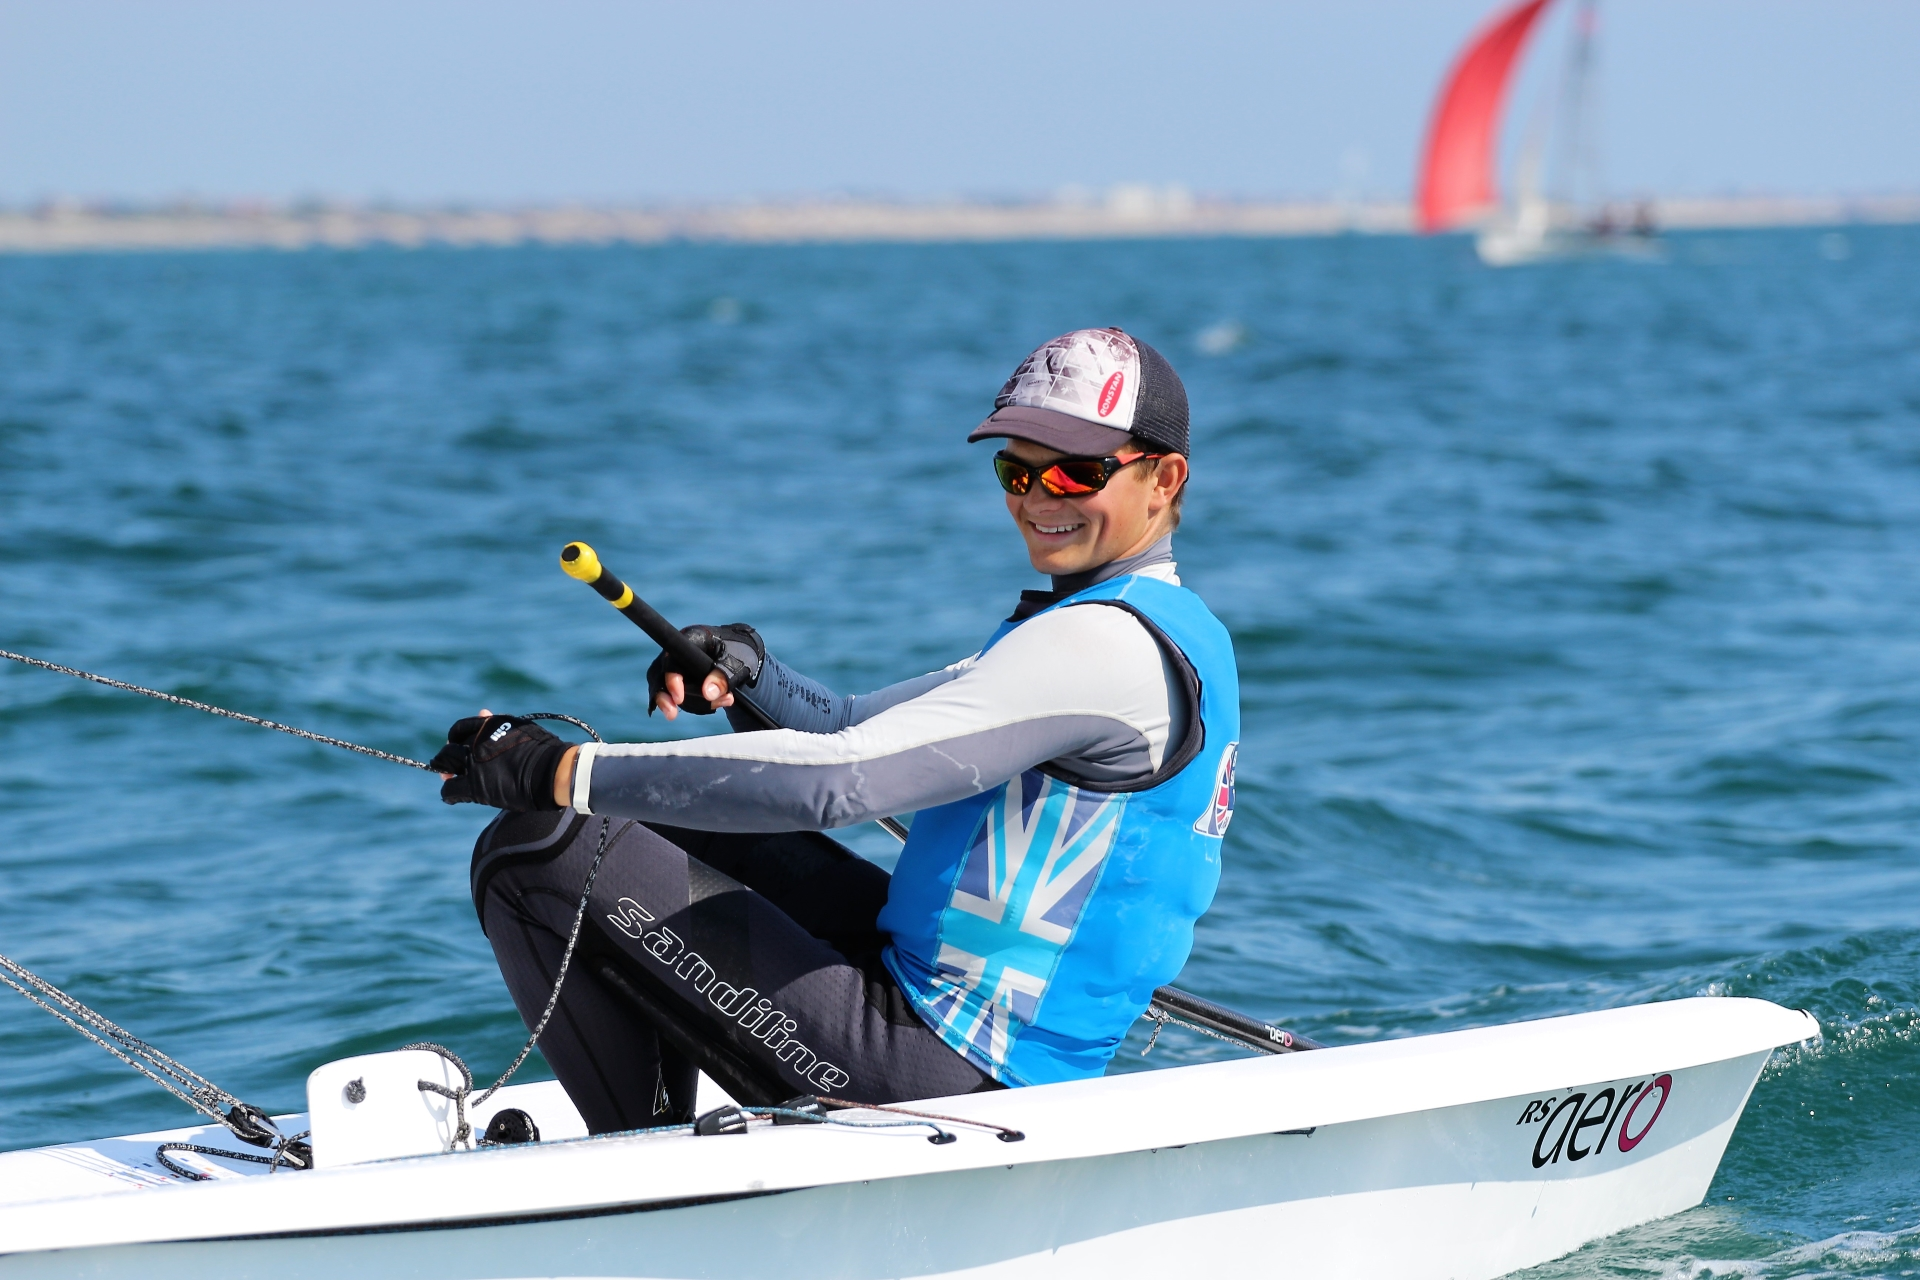 Whatever the weather conditions I was loving sailing the Aero. It was so light, responsive and fun to sail. Always had a smile on my face!